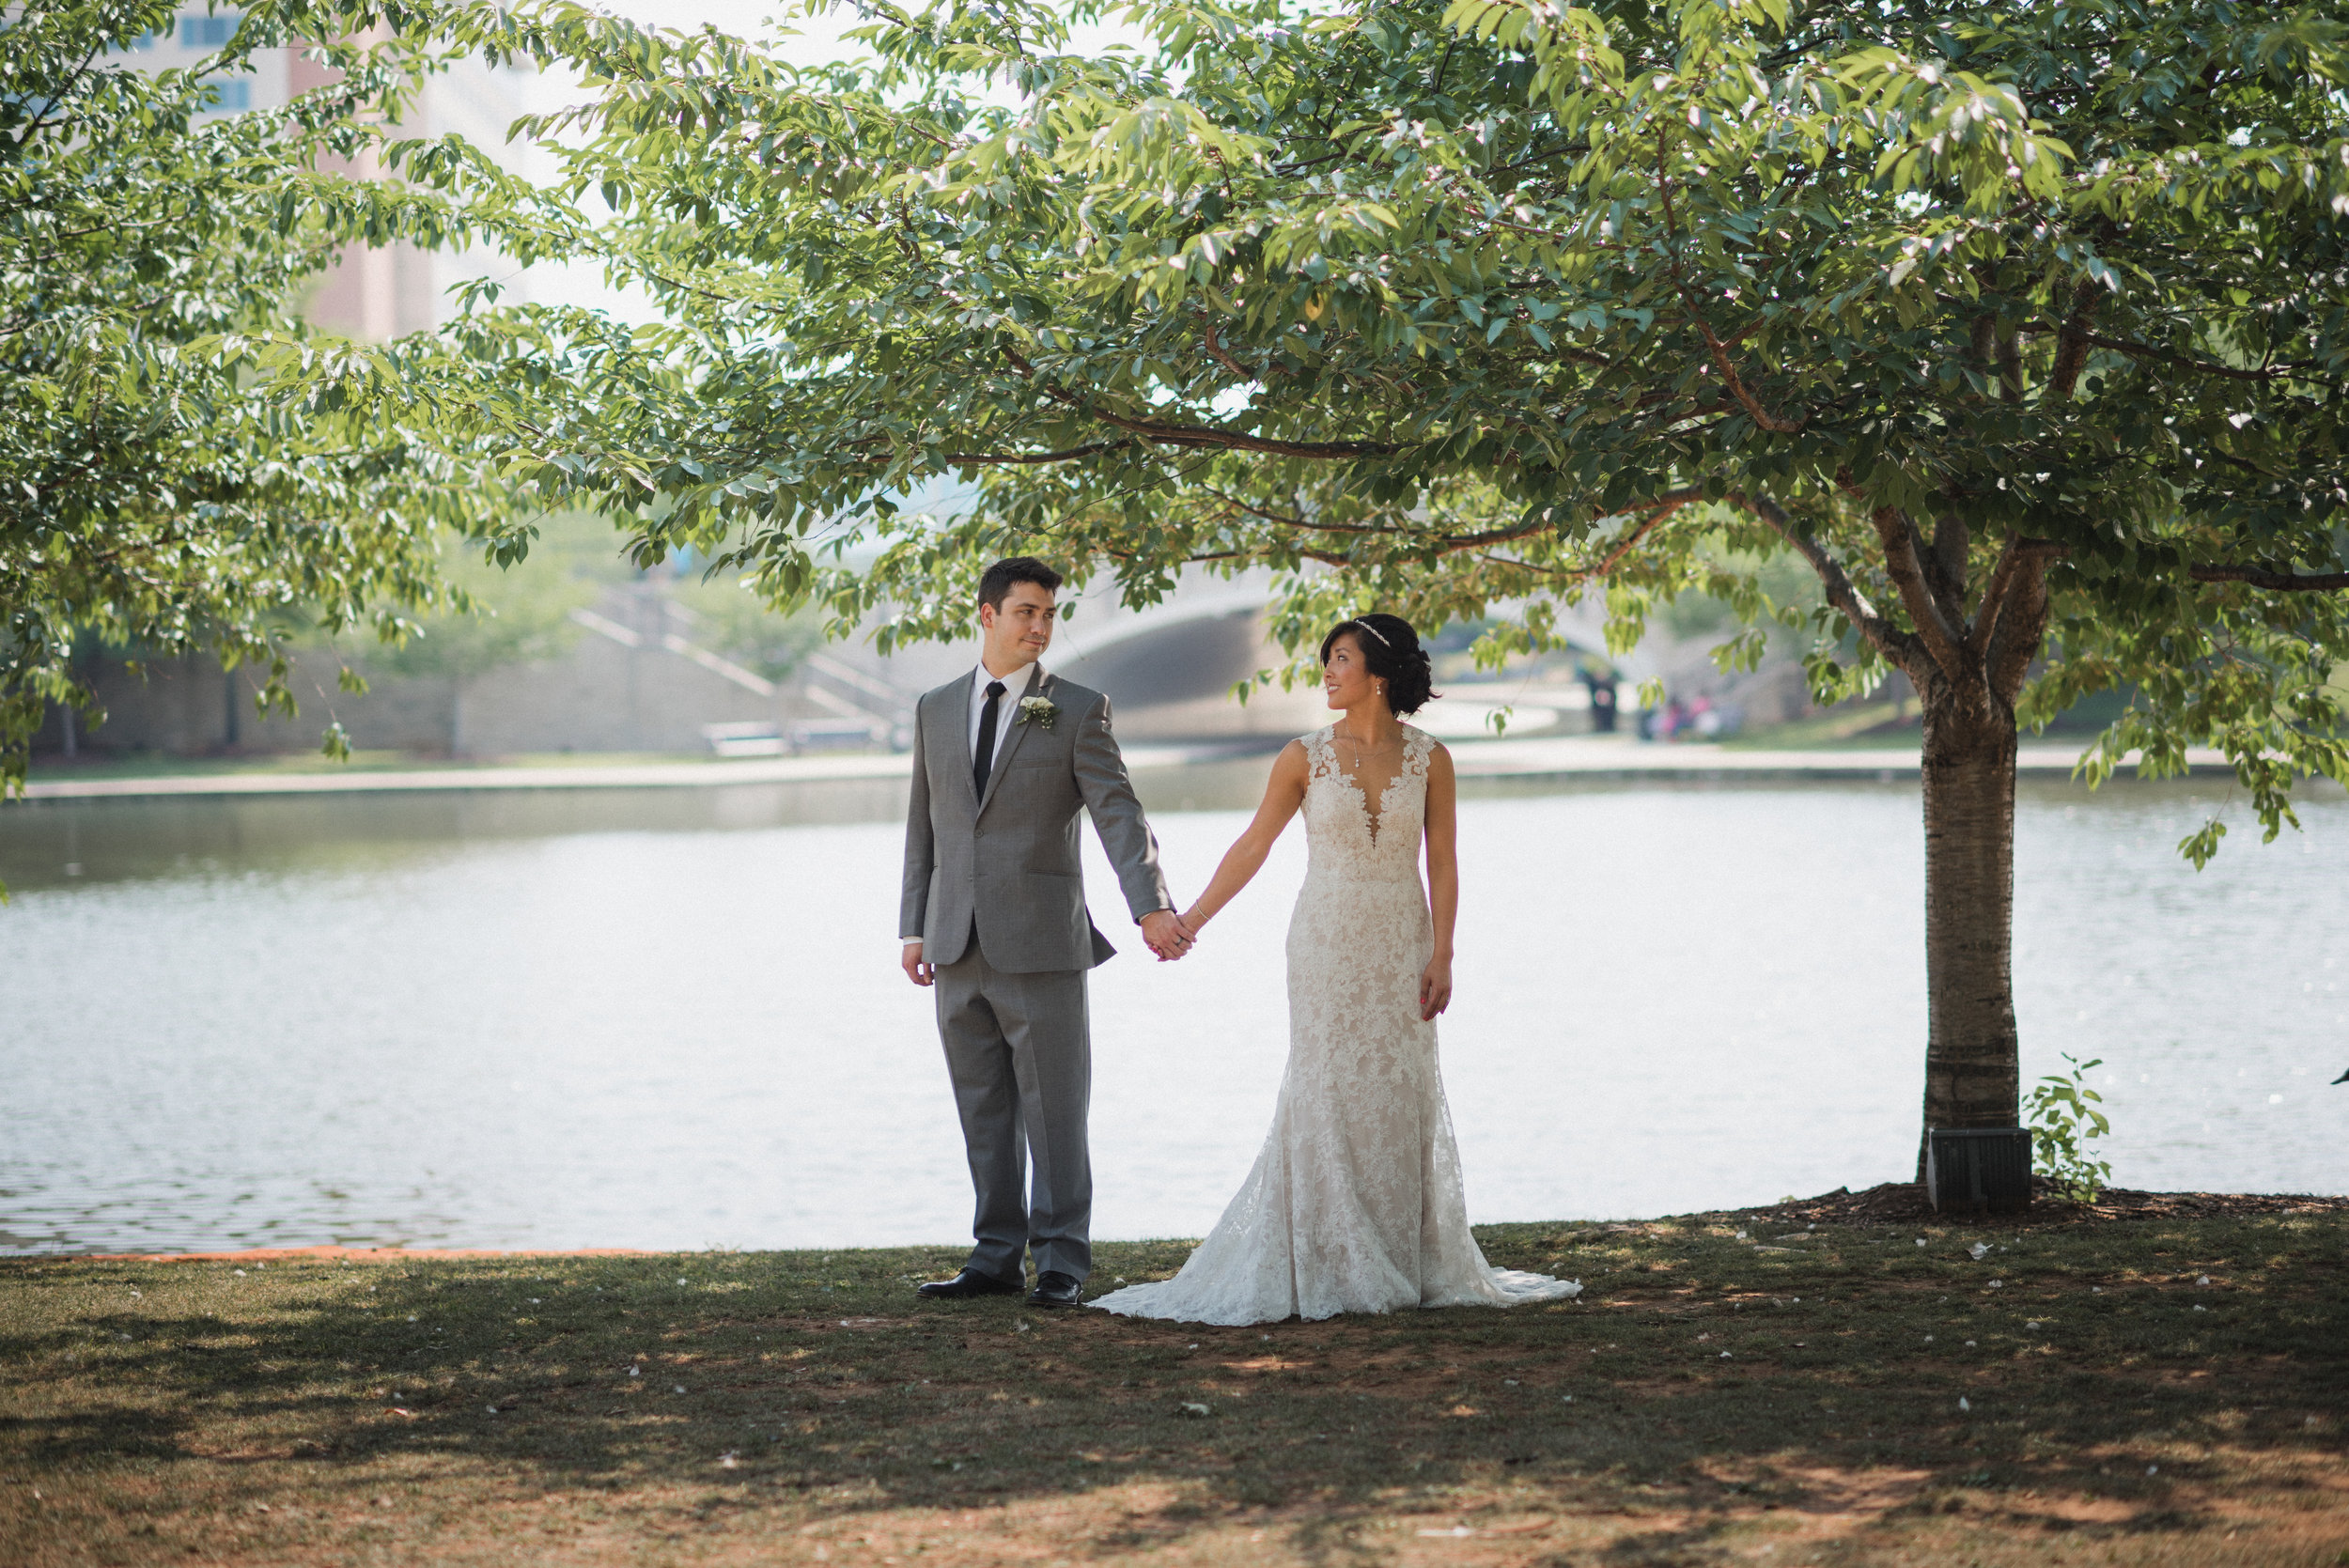 NashvilleWeddingCollection-800.jpg